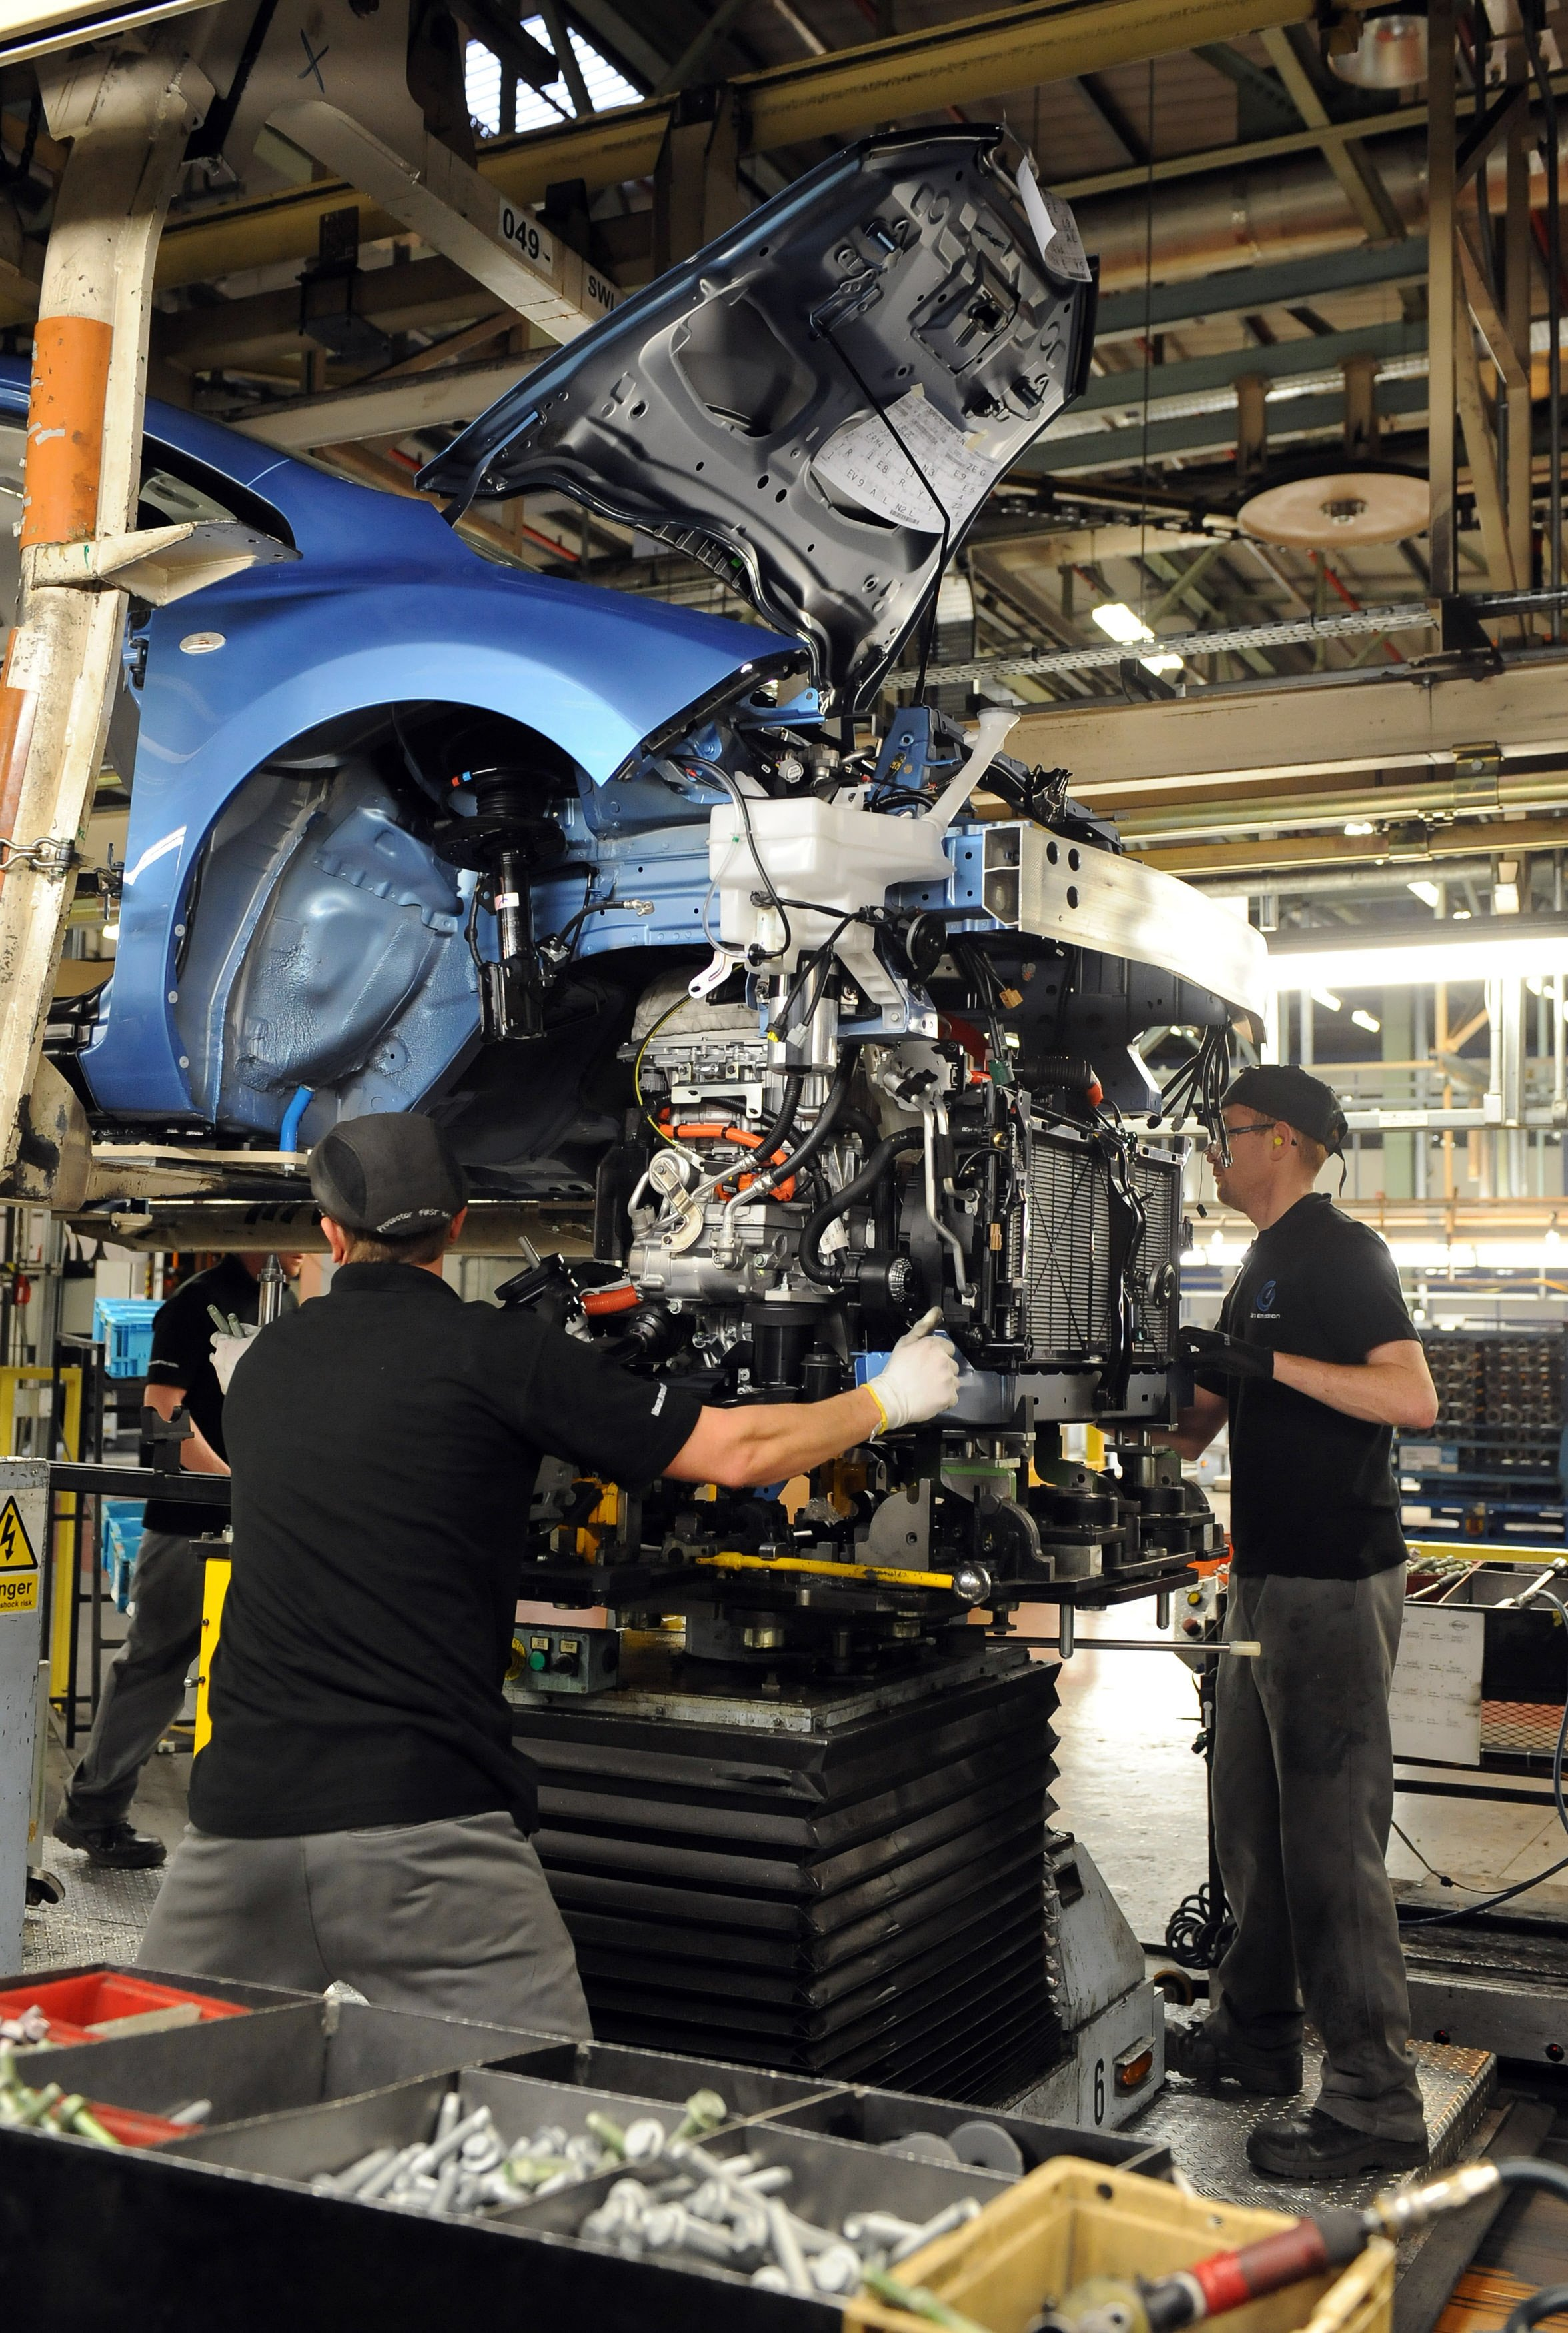 The job cuts at Nissan Sunderland will be limited to staff on temporary contracts.